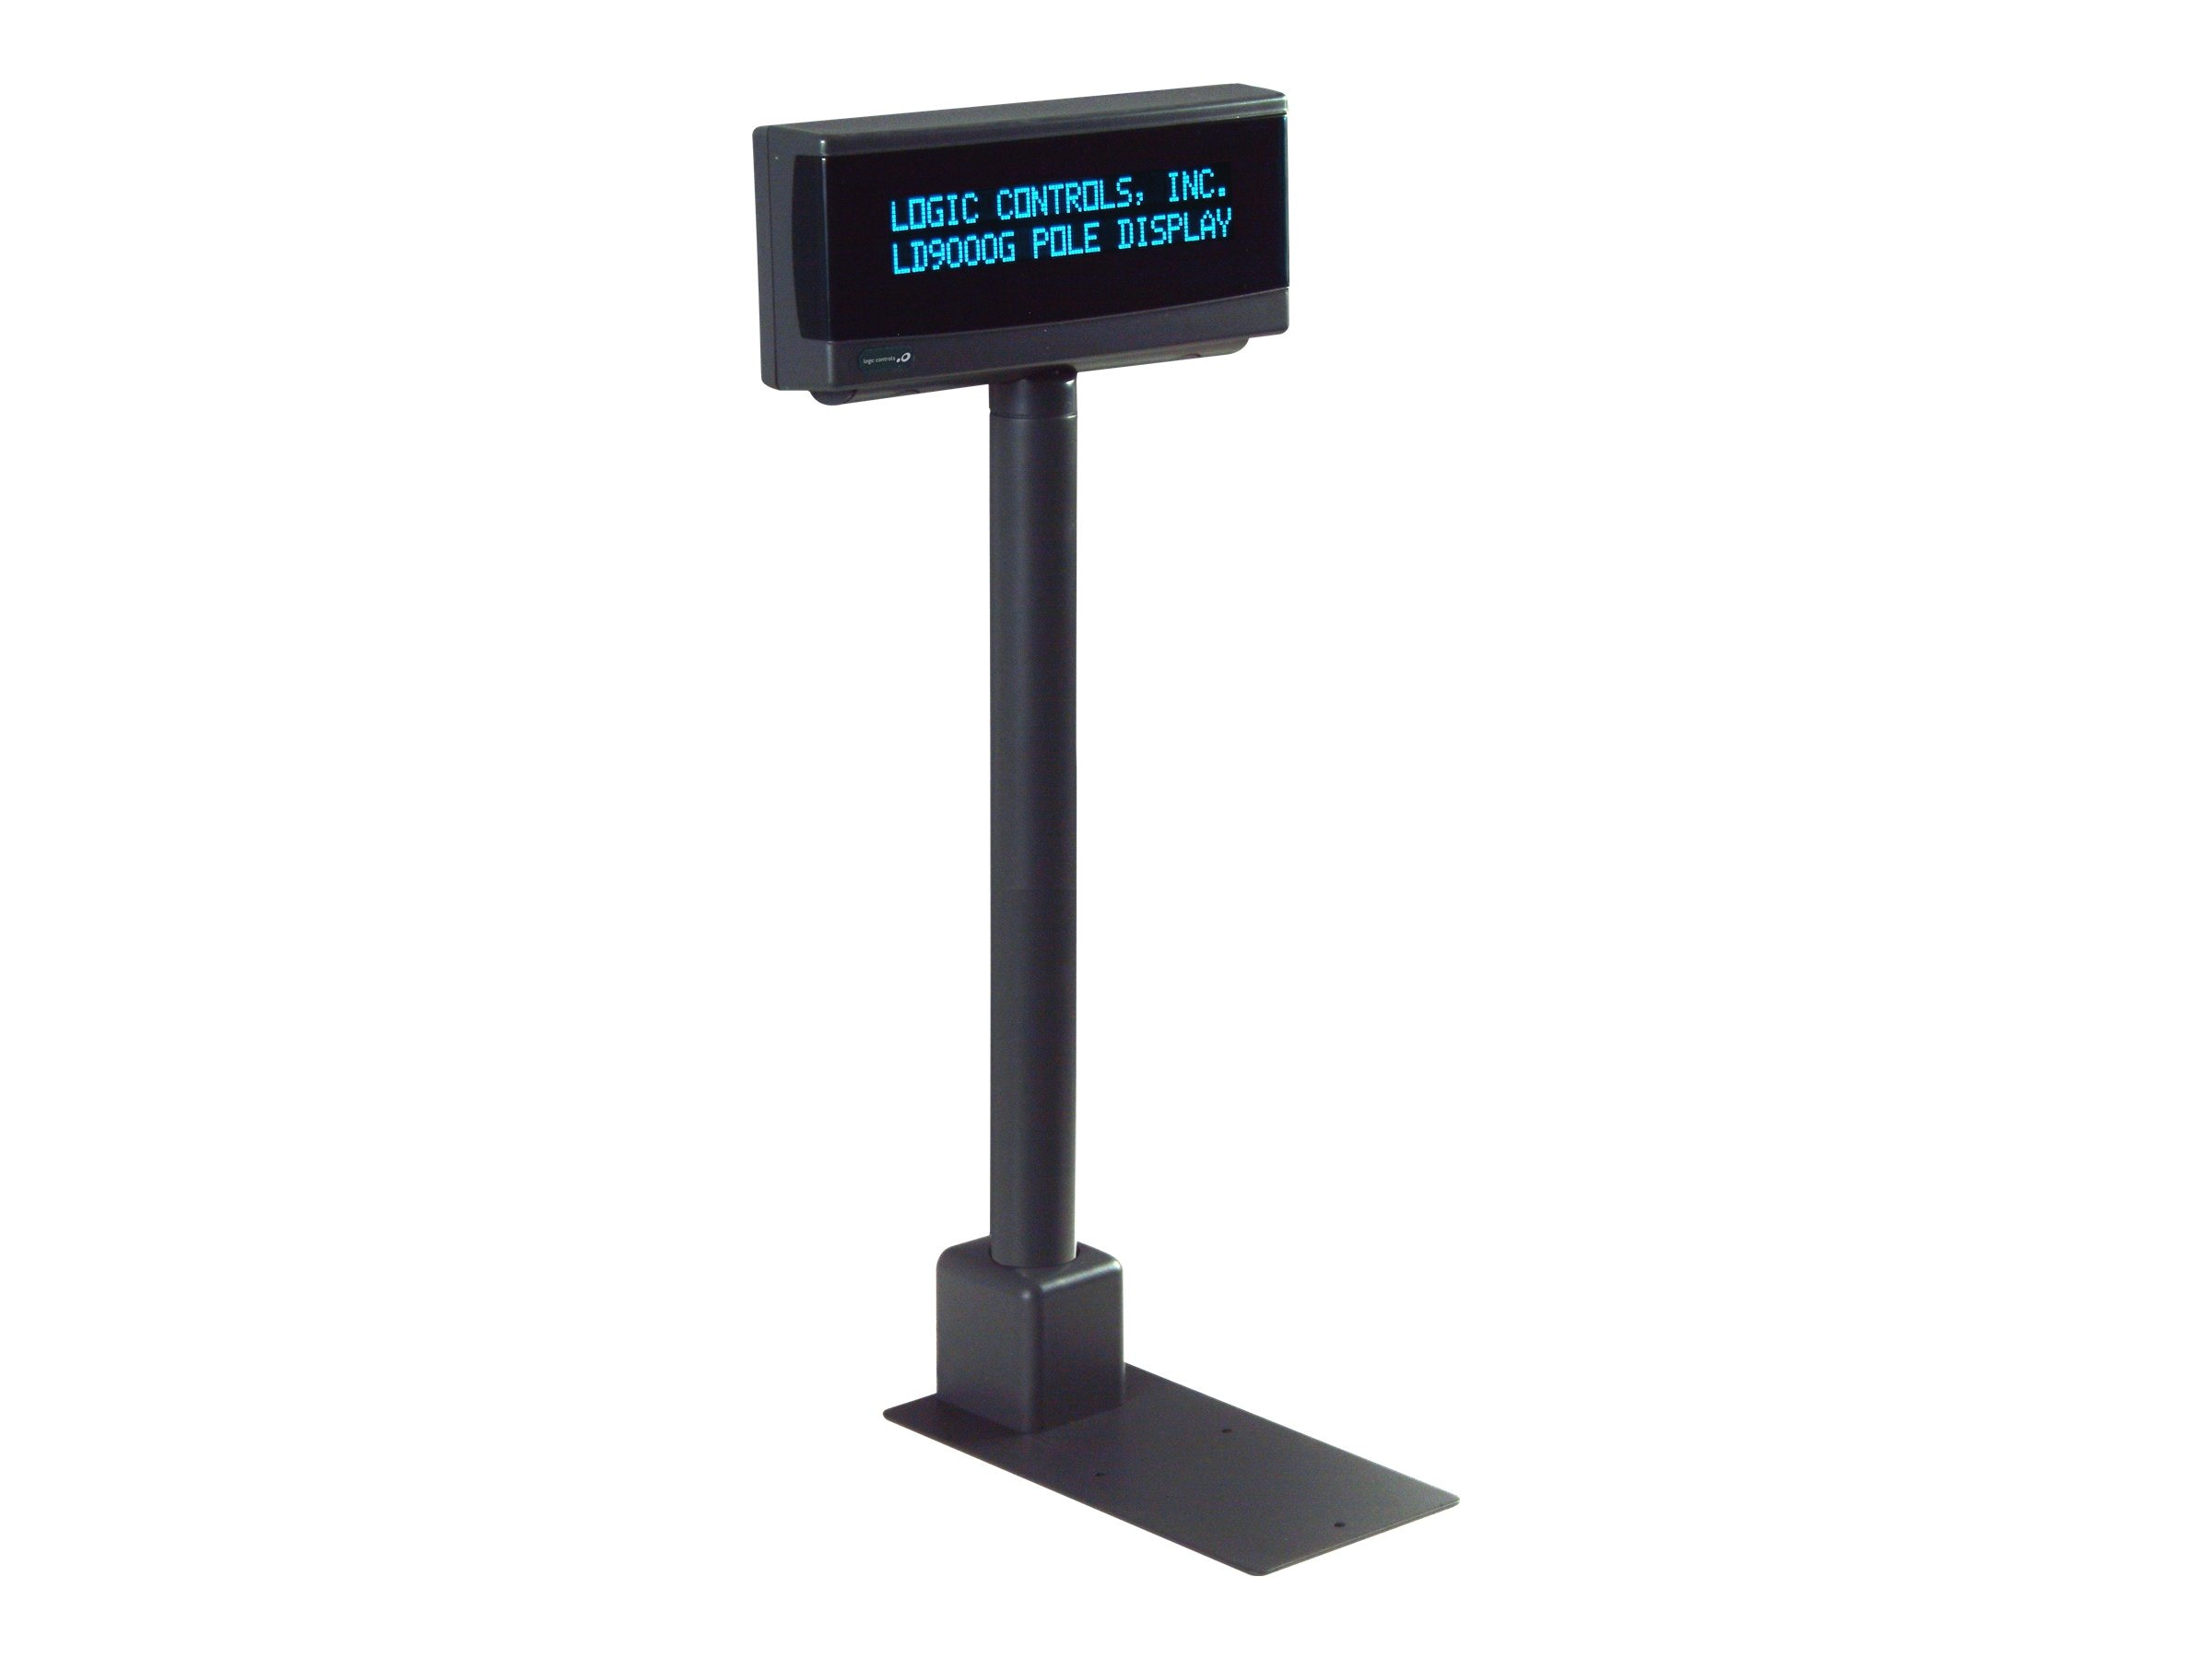 Logic Controls Pole Display, 9.5mm 2x20, USB, Port Powered, Dark Gray, LDX9000UP-GY, 18112297, POS Pole Displays